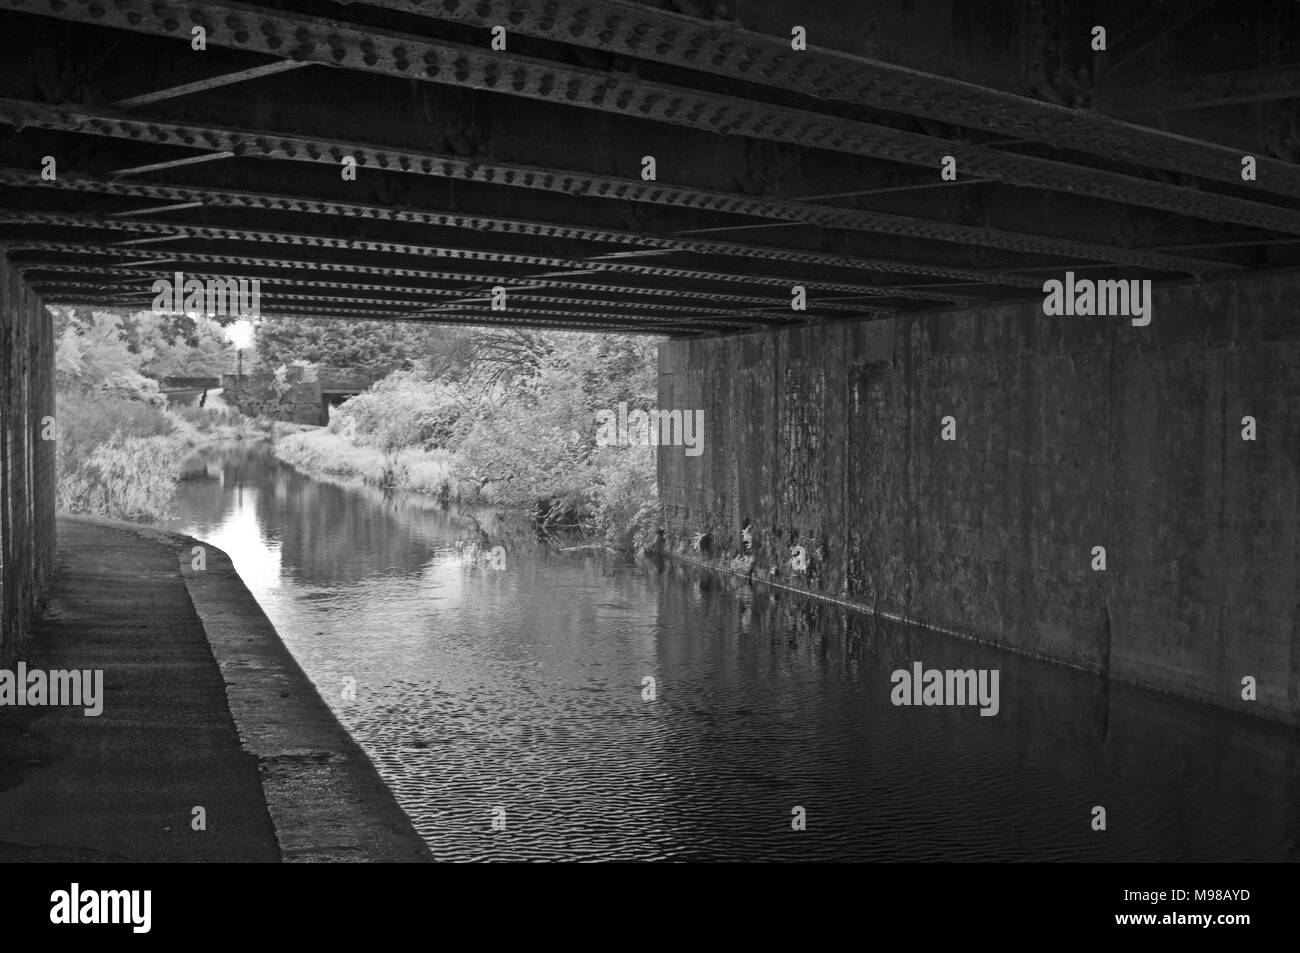 Infared view looking out from under a railway bridge along the Bridgewater and Taunton canal at Obridge in Taunton, Somerset, UK - Stock Image